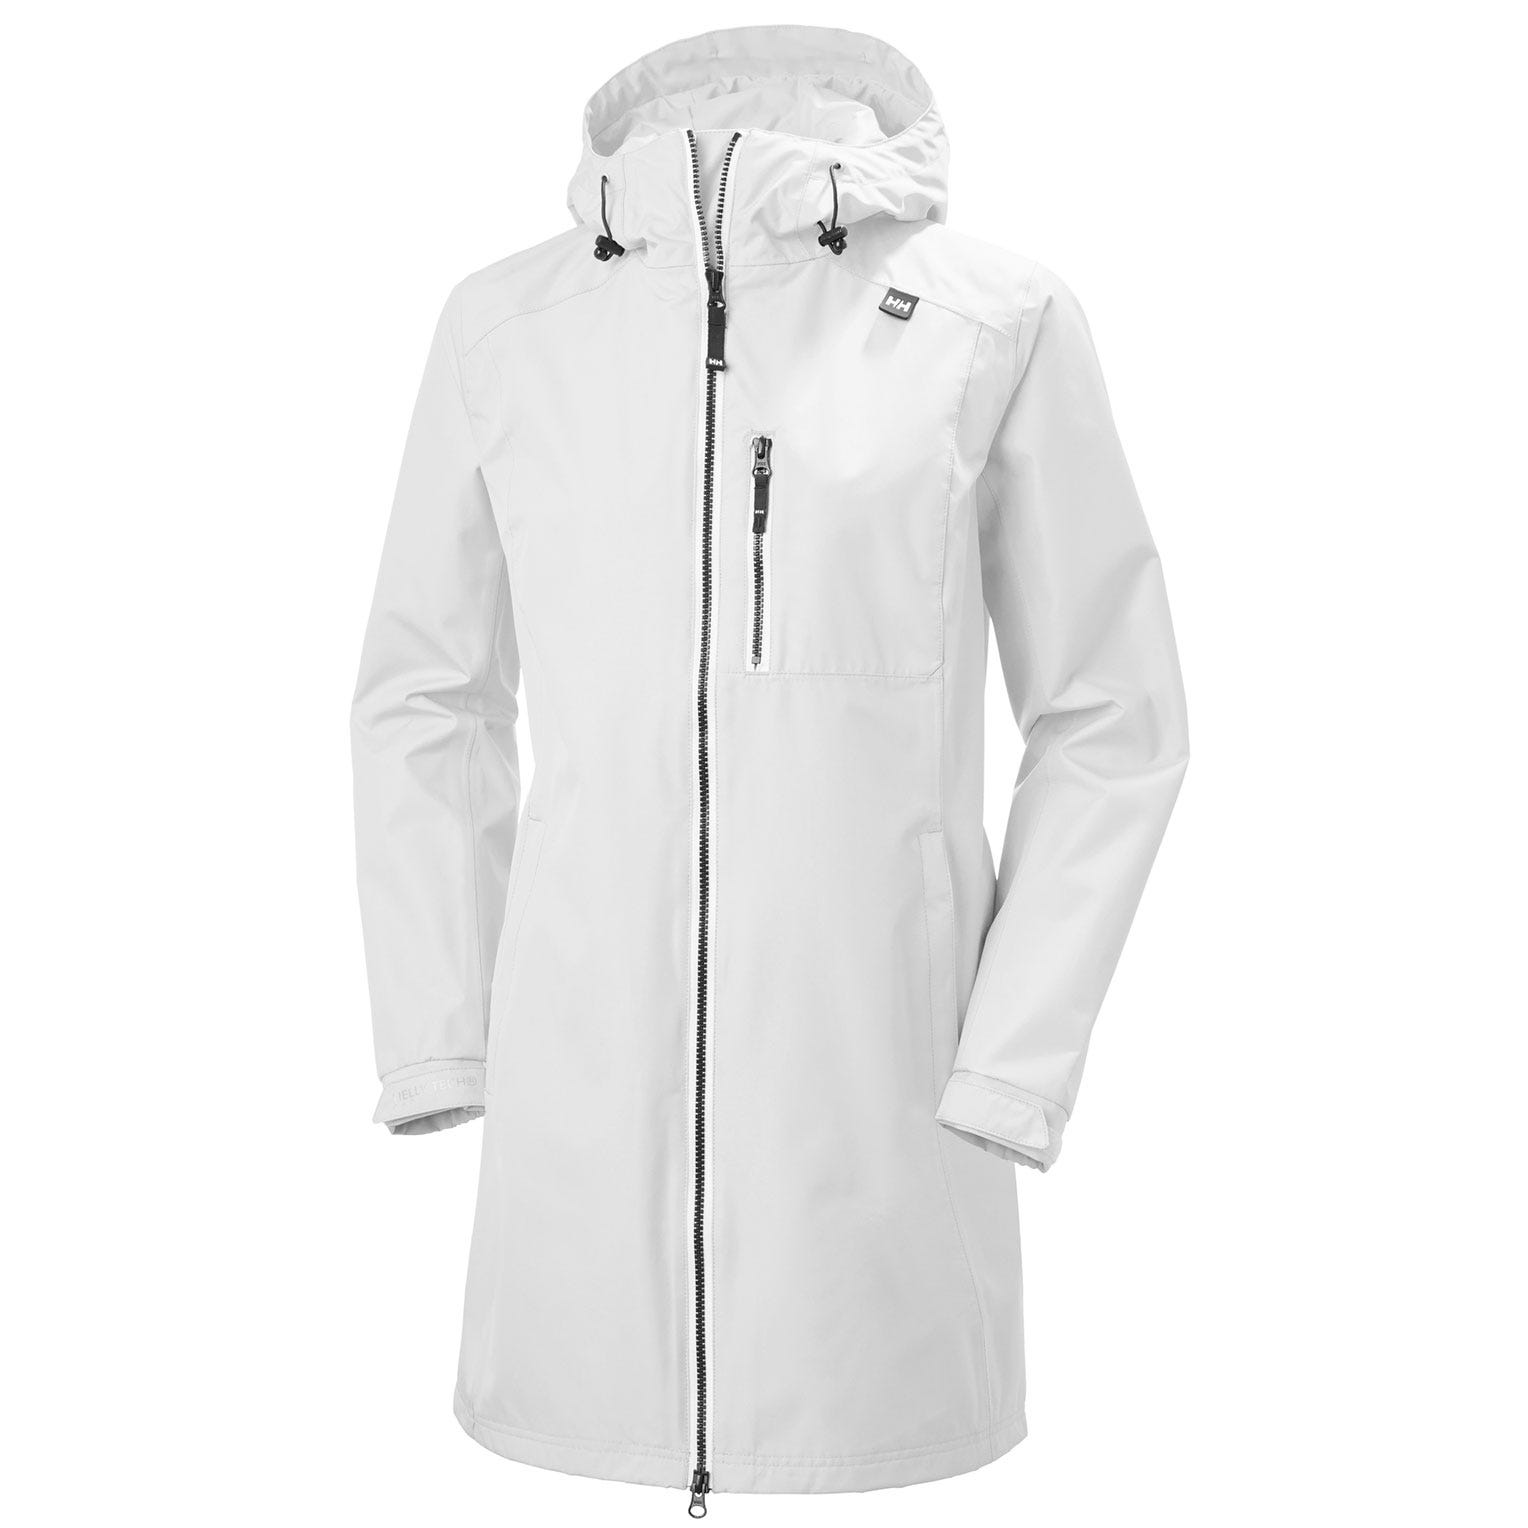 Womens Long Belfast 3/4 Length Rain Jacket | Helly Hansen Womens White M